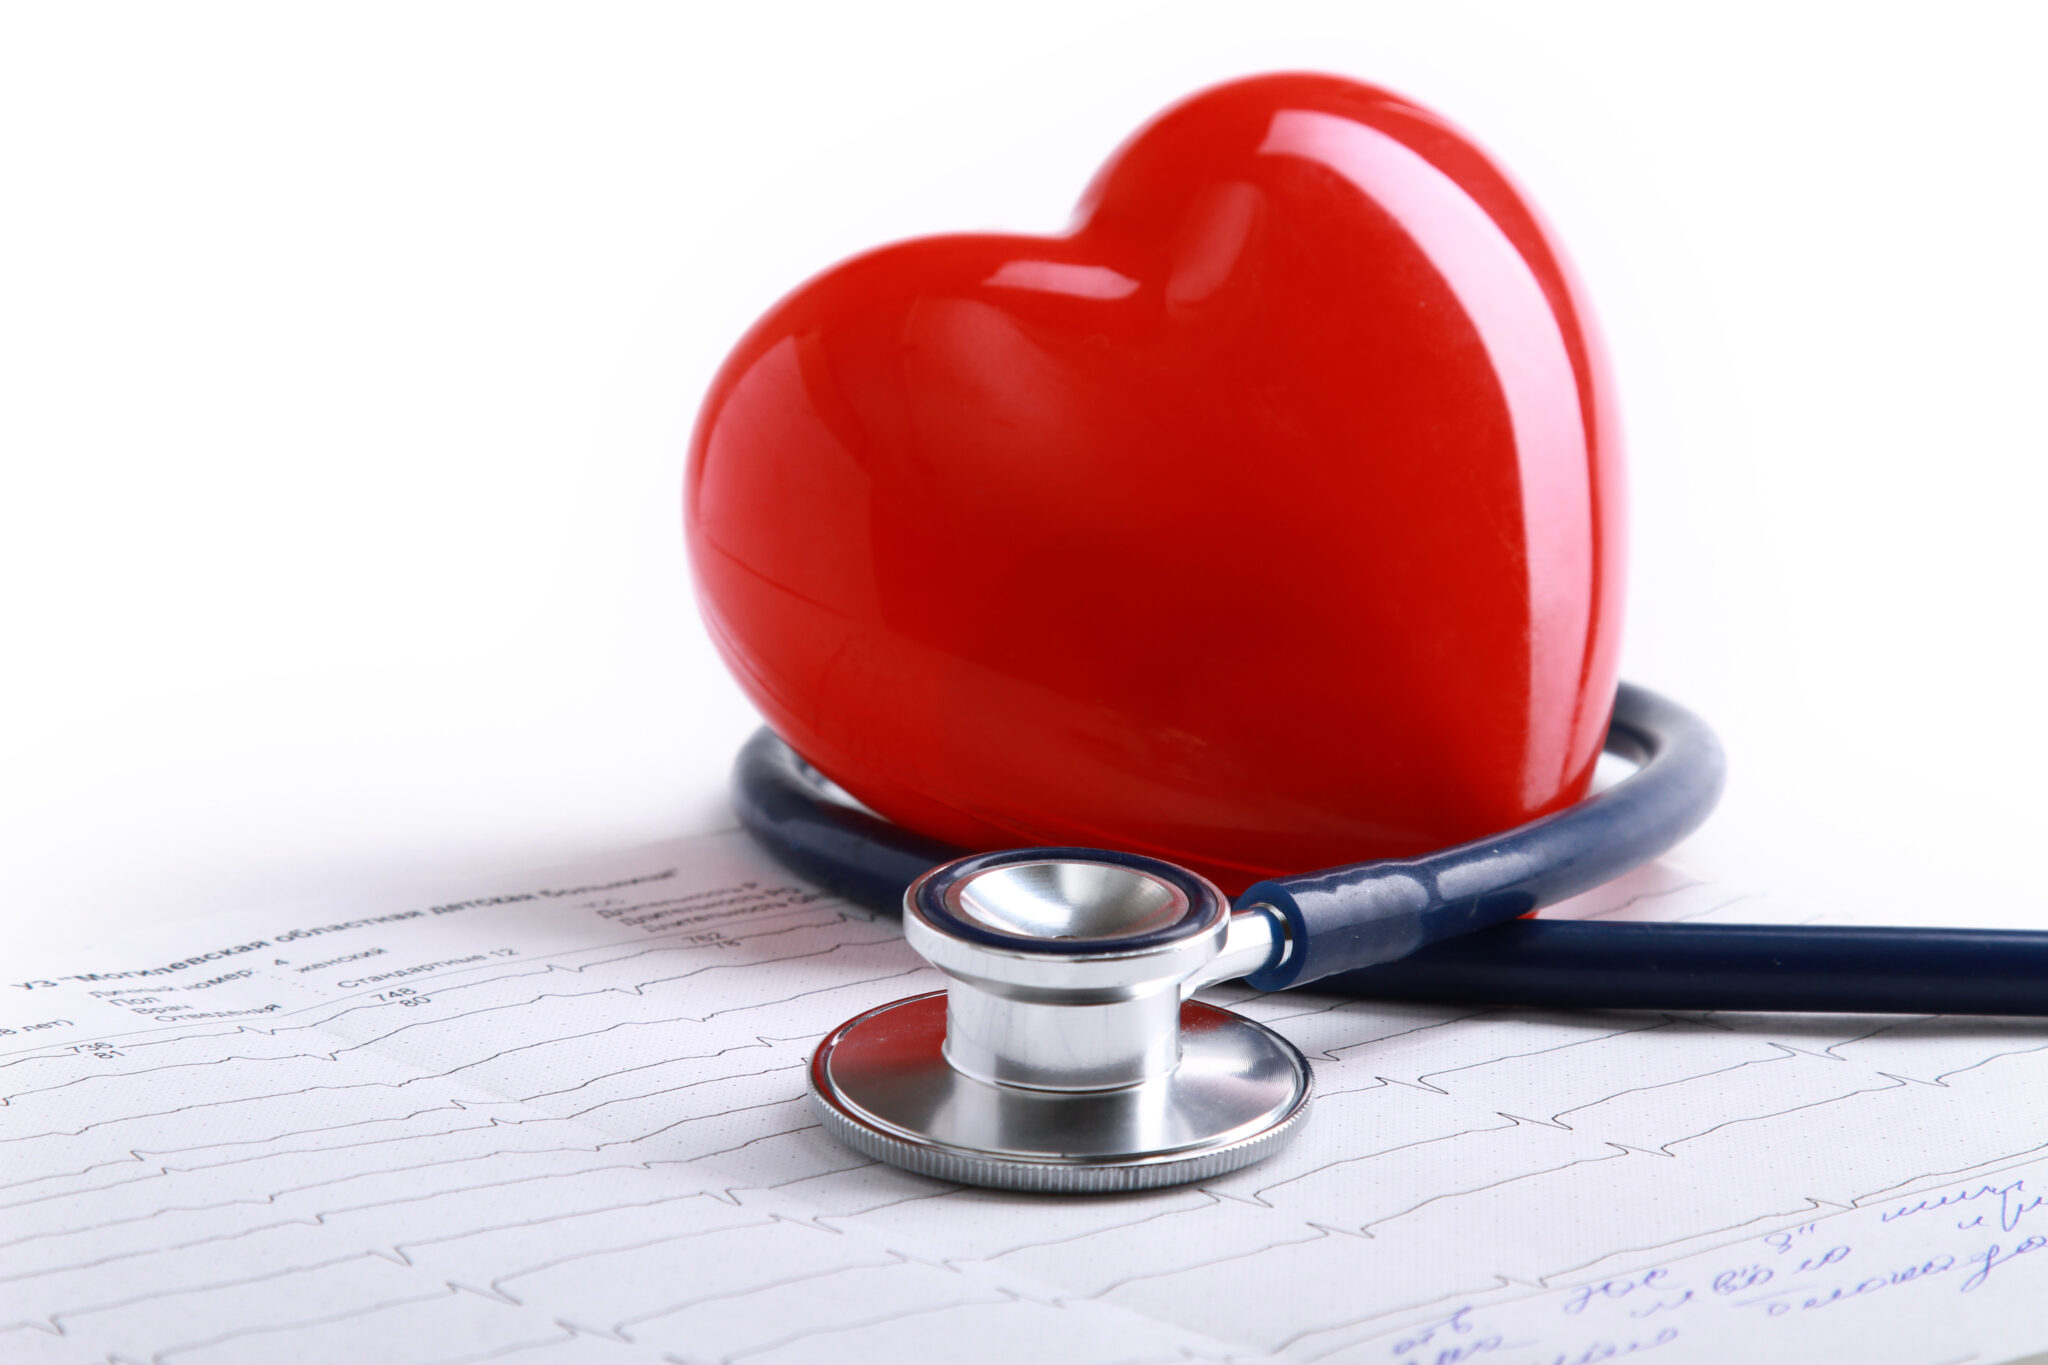 CONNECTION BETWEEN MOUTH BACTERIA AND HEART DISEASE